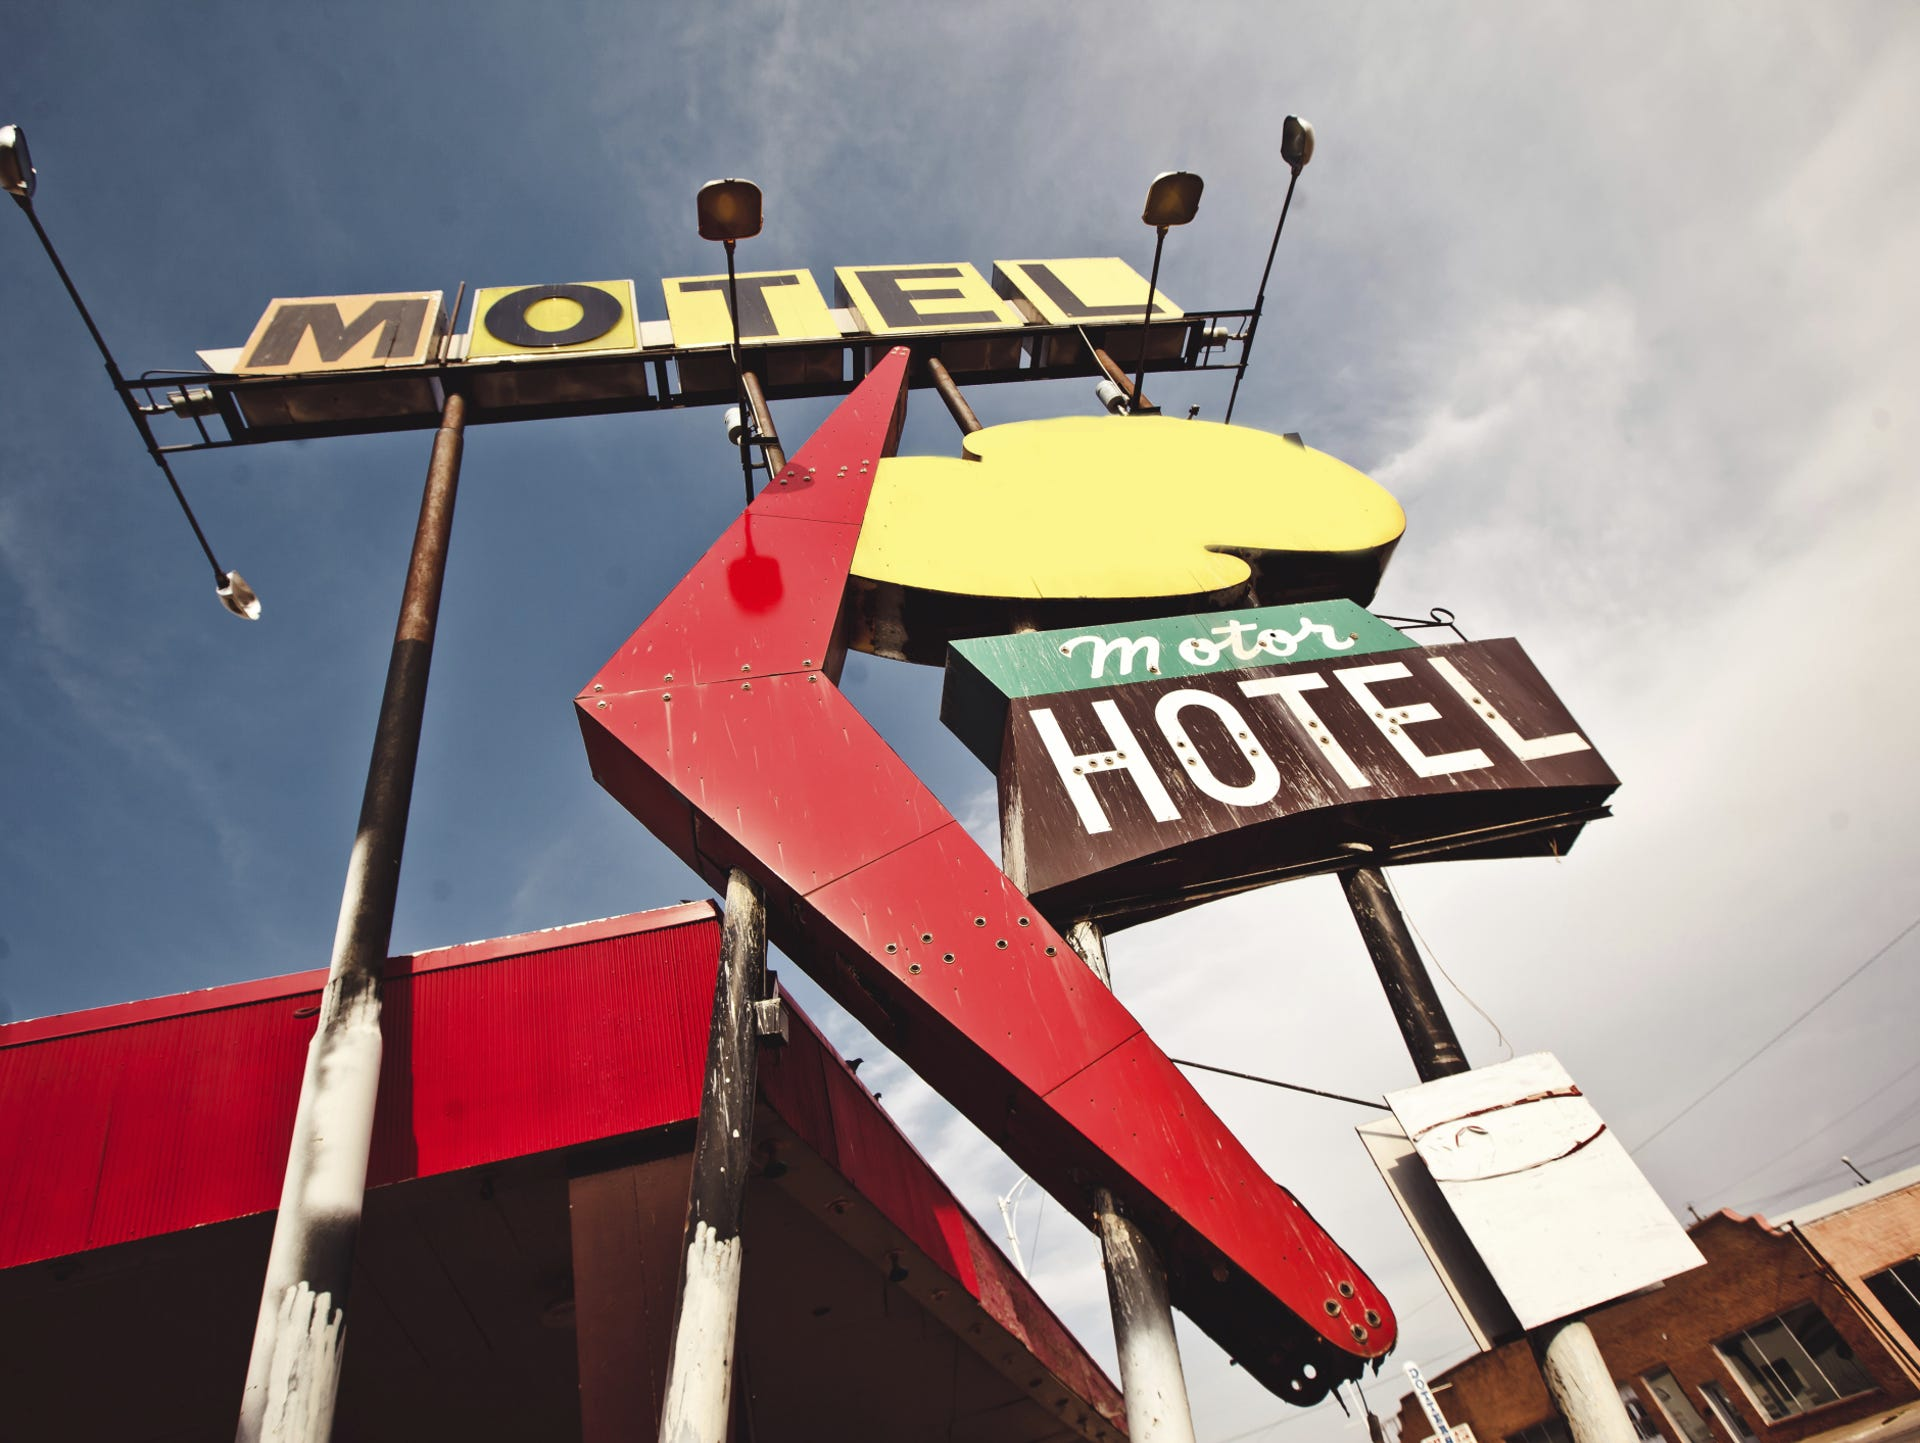 Iconic Route 66 motels